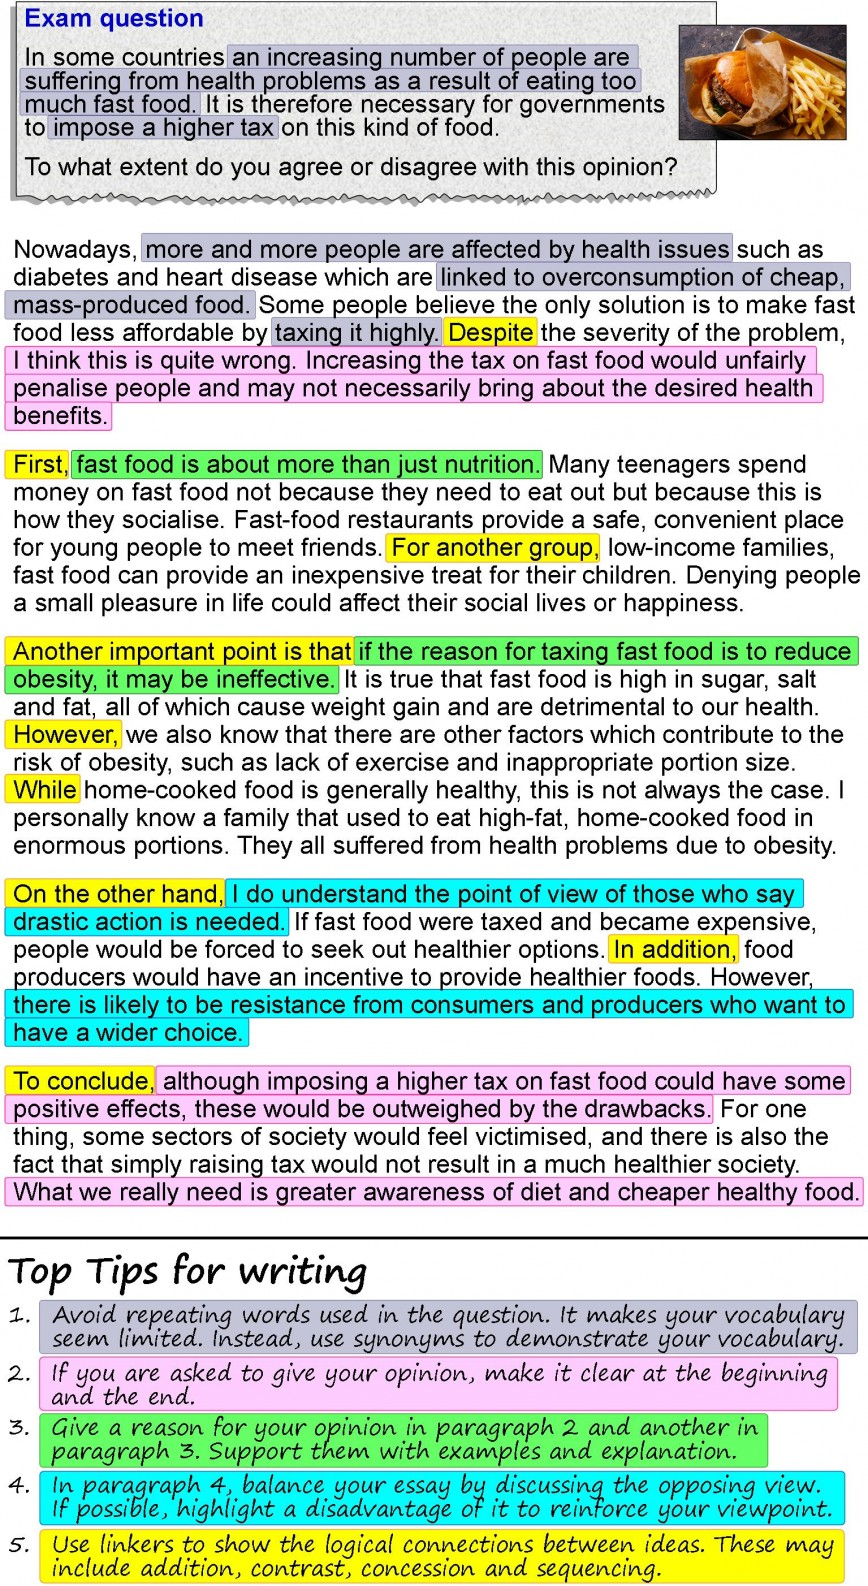 001 Opinion Essay About Fast Food Example An 4 Unbelievable British Council 868